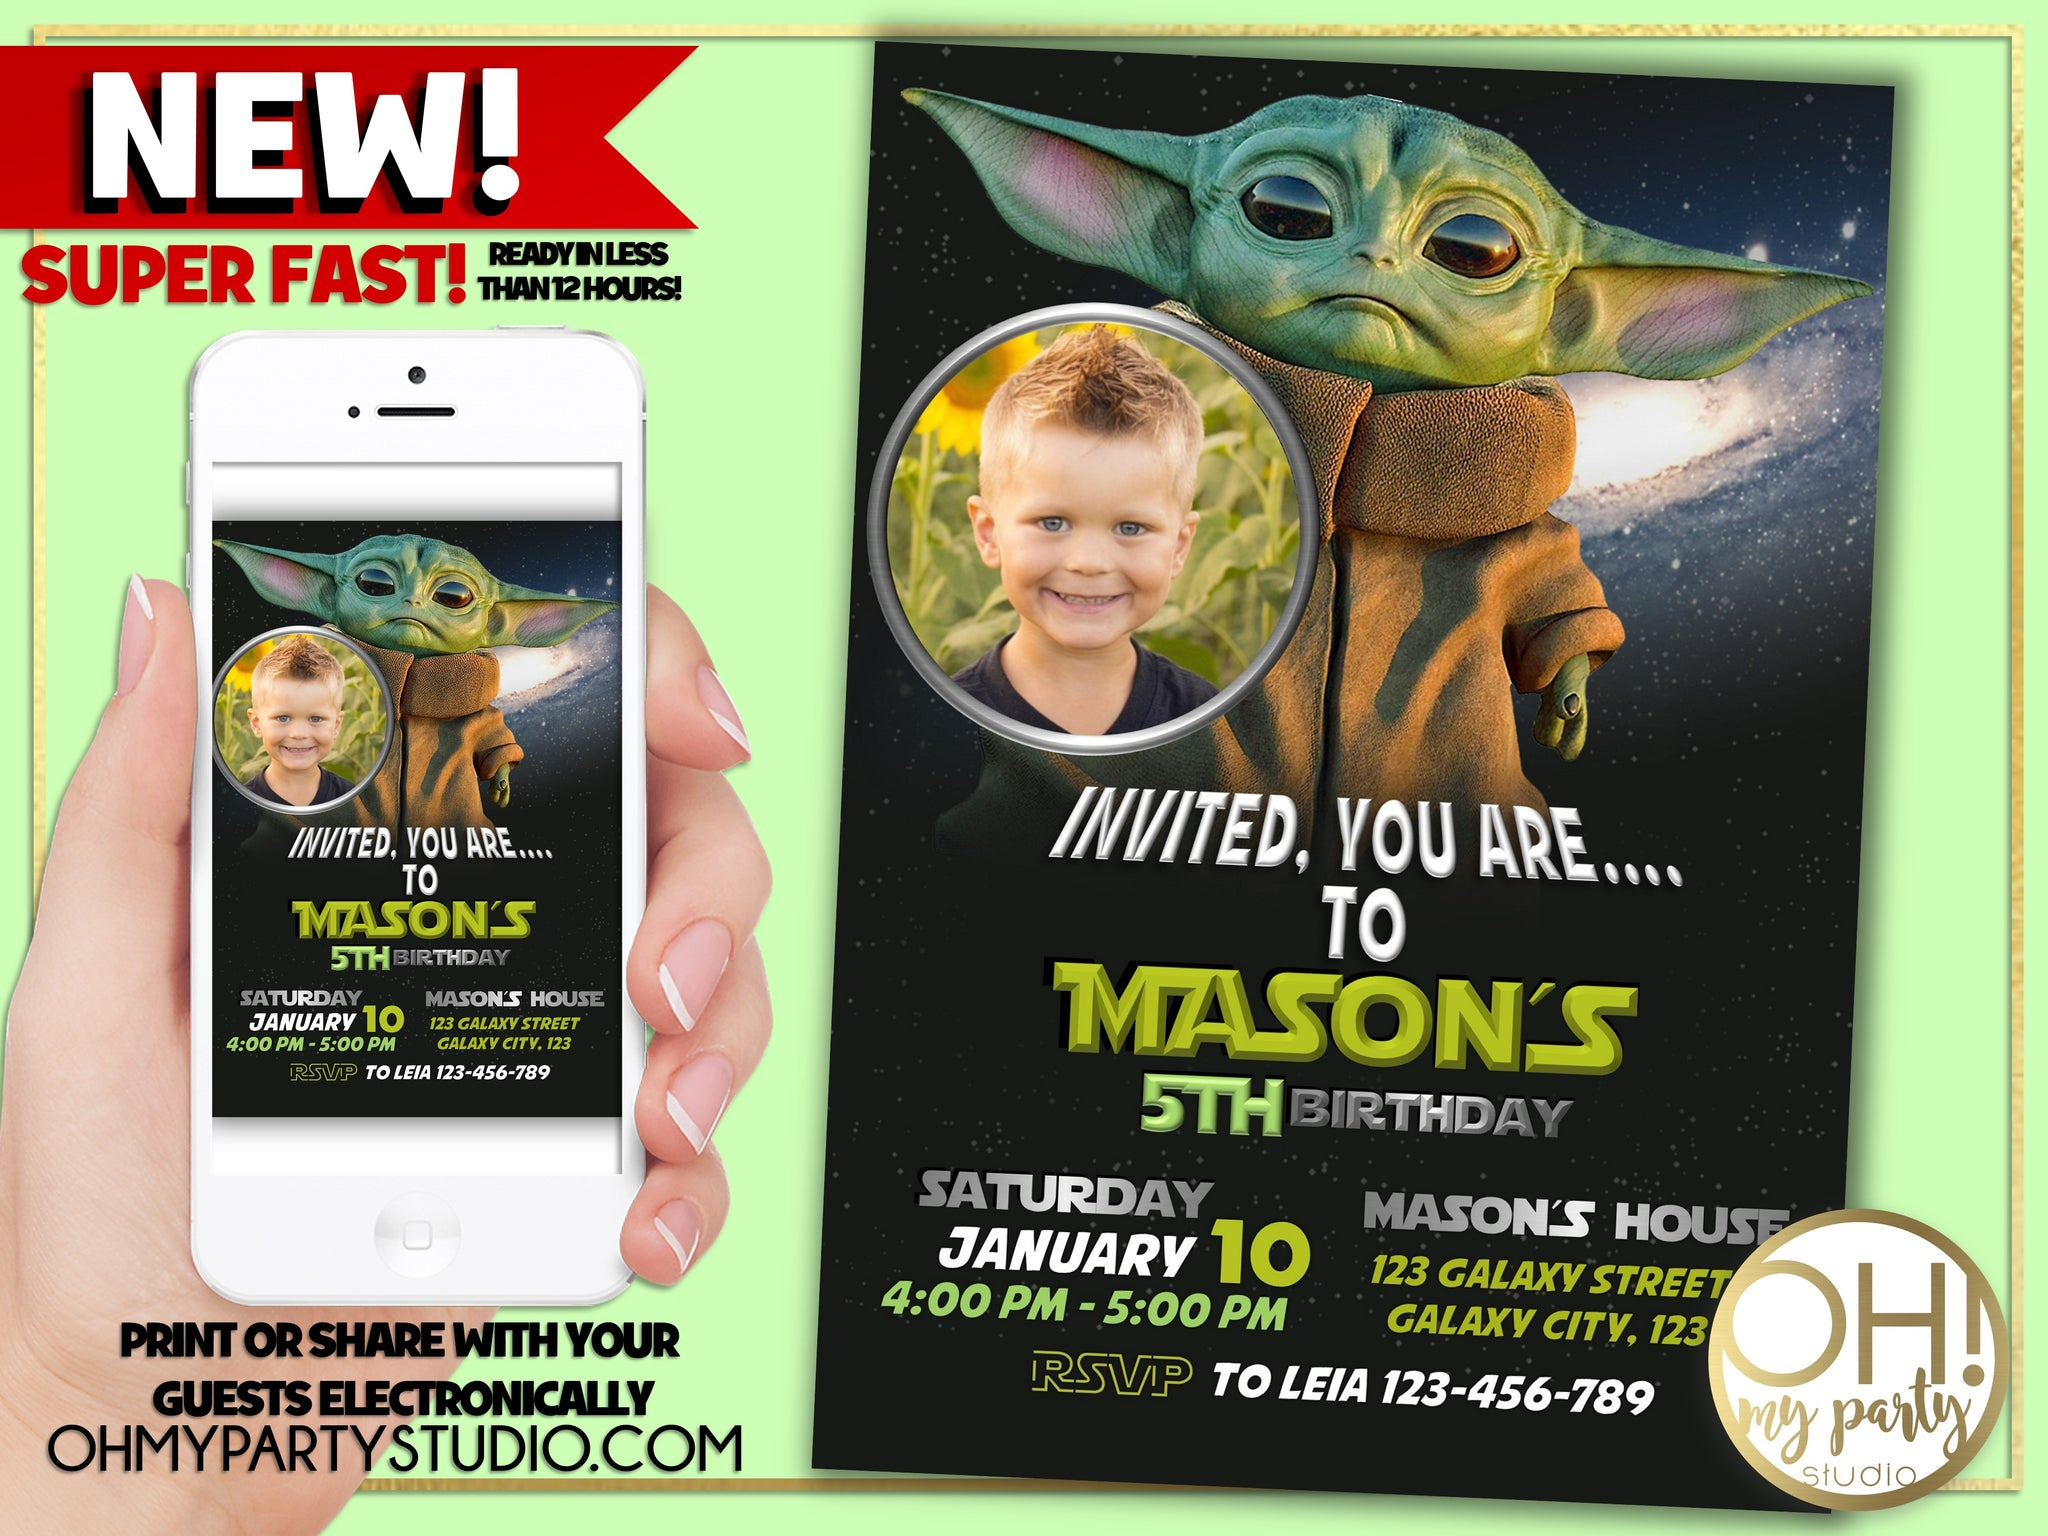 BABY YODA INVITATION, BABY YODA INVITE, THE MANDALORIAN INVITATION, THE MANDALORIAN BIRTHDAY INVITATION, THE MANDALORIAN BIRTHDAY PARTY, BABY YODA INVITATIONS, JEDY INVITATION, BABY YODA BIRTHDAY INVITATION, BABY JODA PARTY, BABY YODA BIRTHDAY, BABY YODA INVITATION, BABY YODA BIRTHDAY INVITATION, BABY YODA PARTY, BABY YODA INVITATIONS, BABY YODA INVITATION